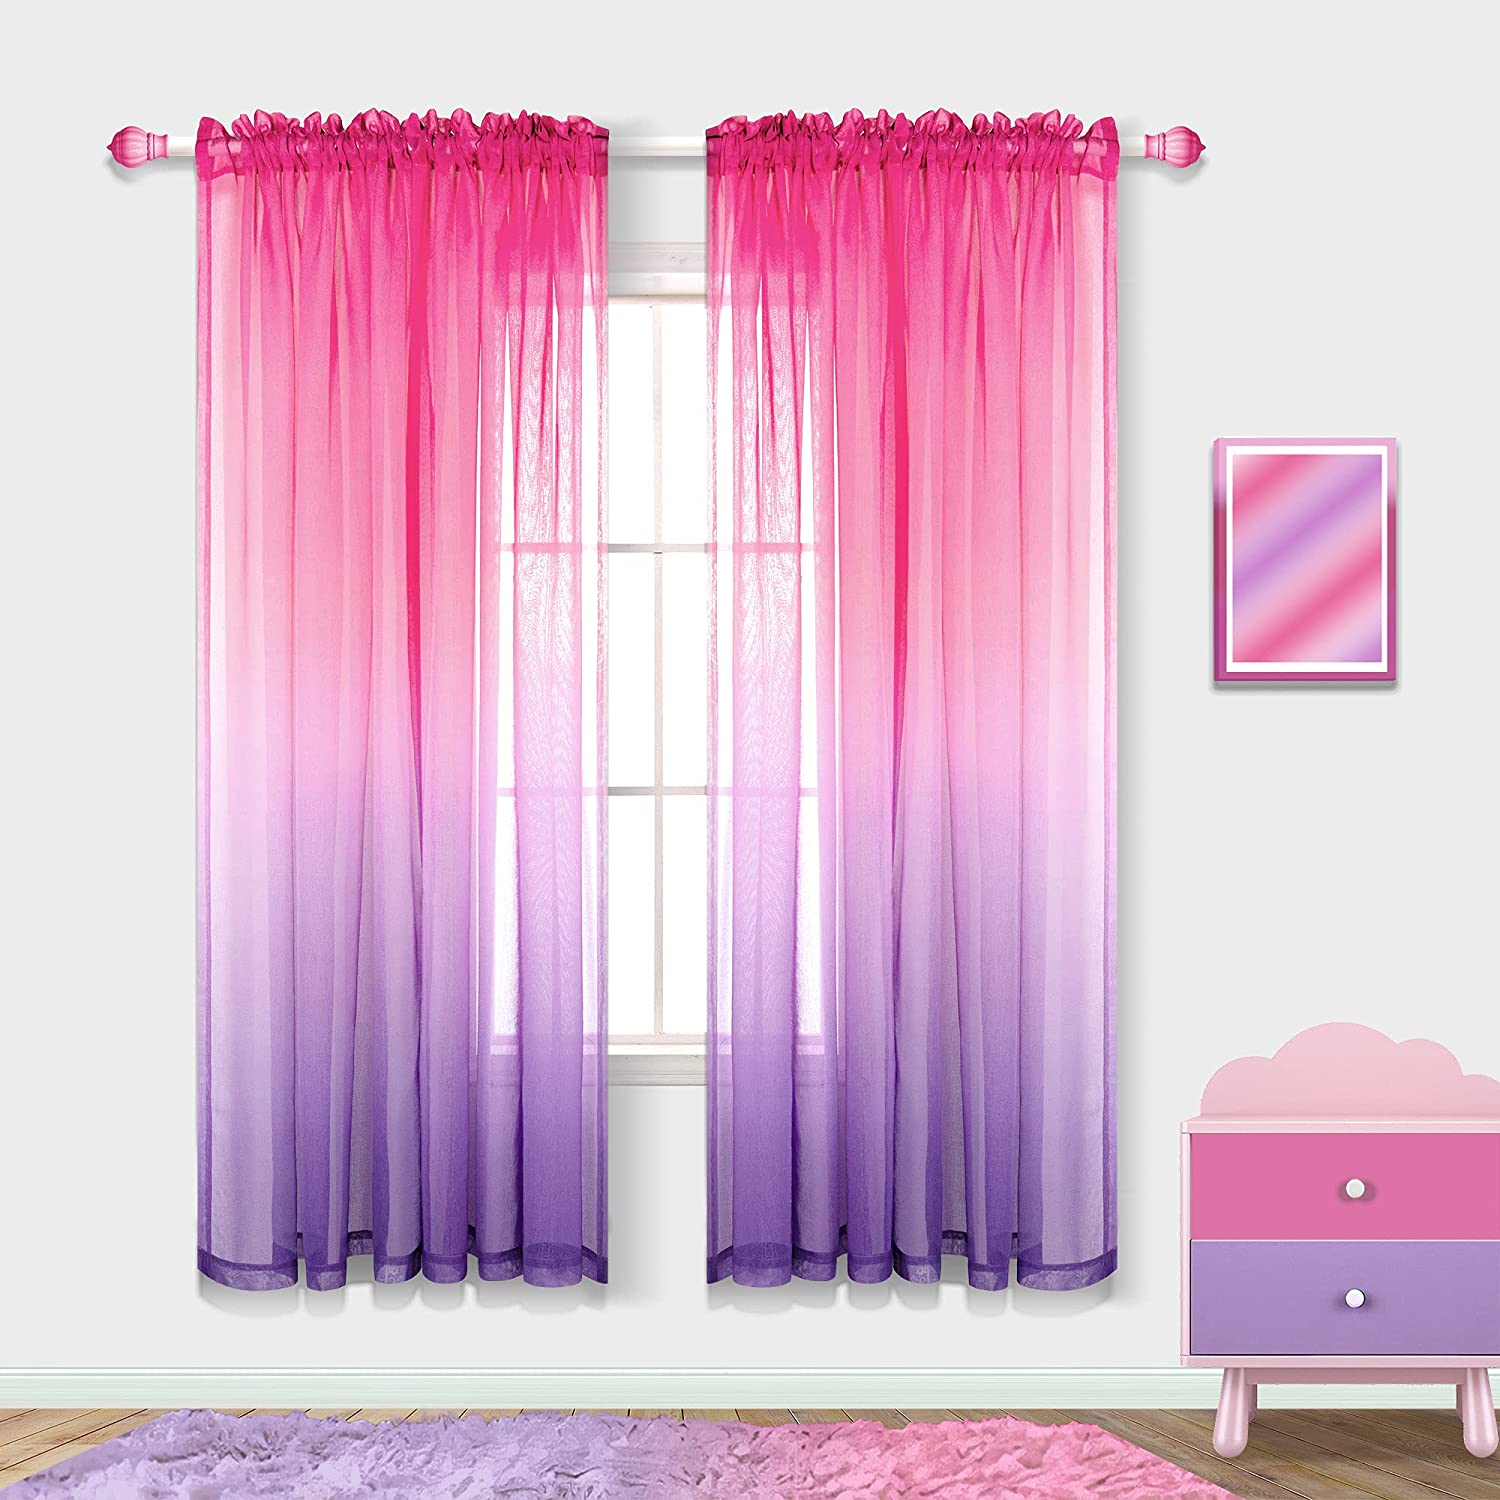 Girls Room Decorations for Bedroom 2 Panels Rod Pocket Ombre Curtains Pink and Purple Room Decor for Teen Girls Hot Pink to Lavender Purple 63 Inch Length